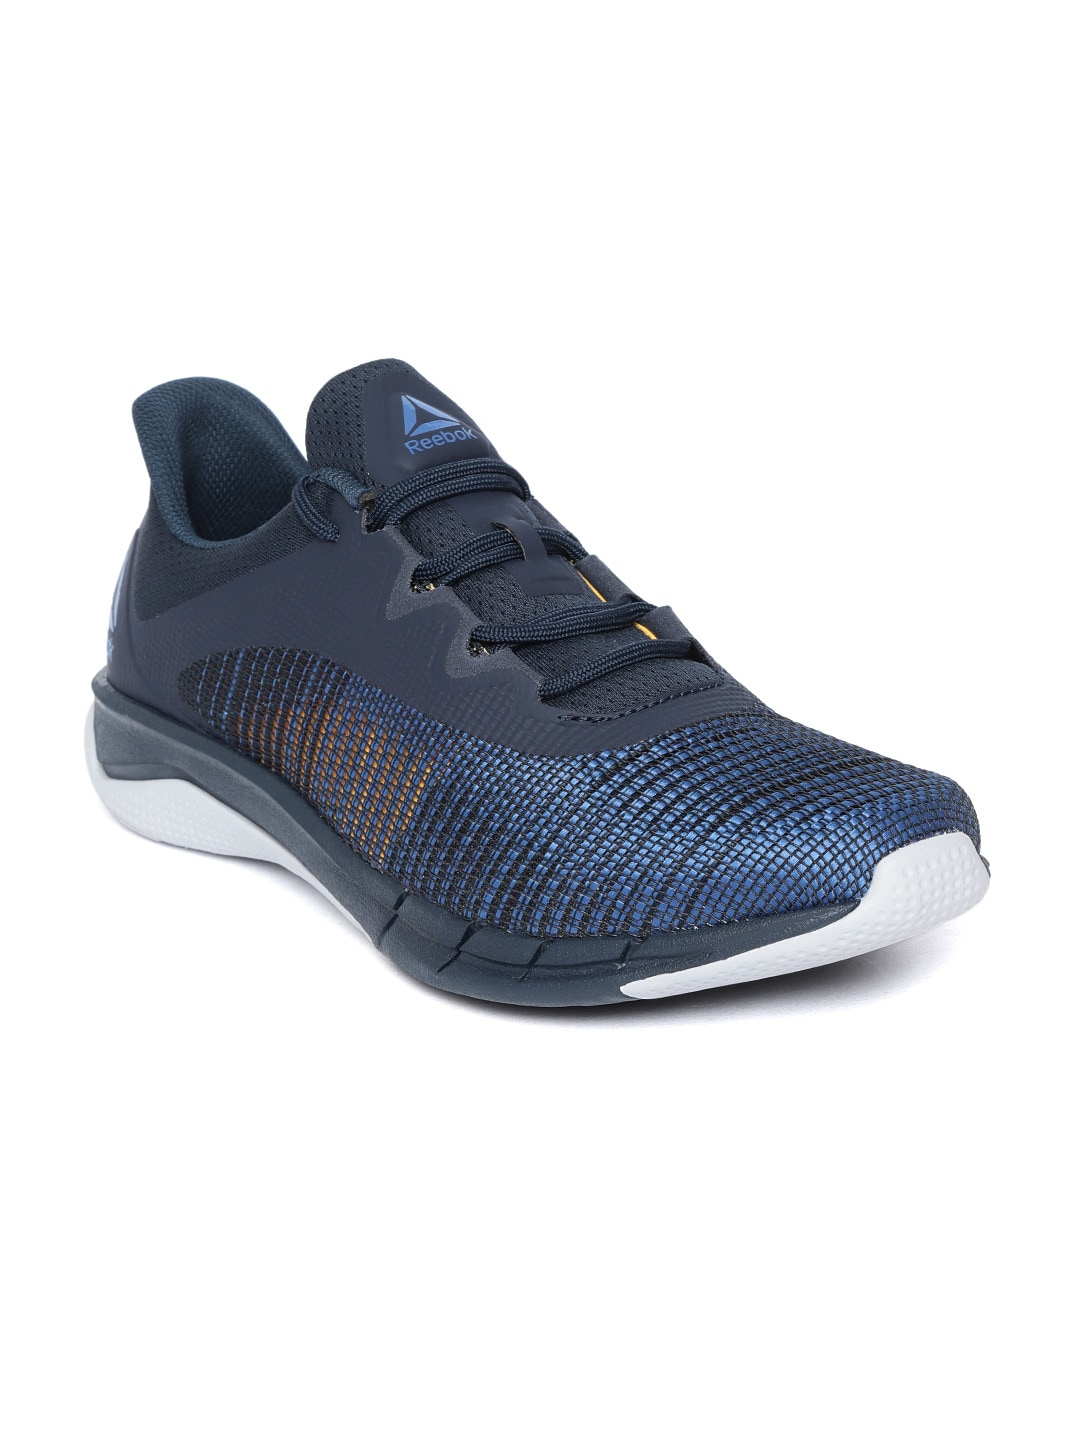 ad8efa57bf2 Reebok Navy Blue Blue Sports Shoes - Buy Reebok Navy Blue Blue Sports Shoes  online in India